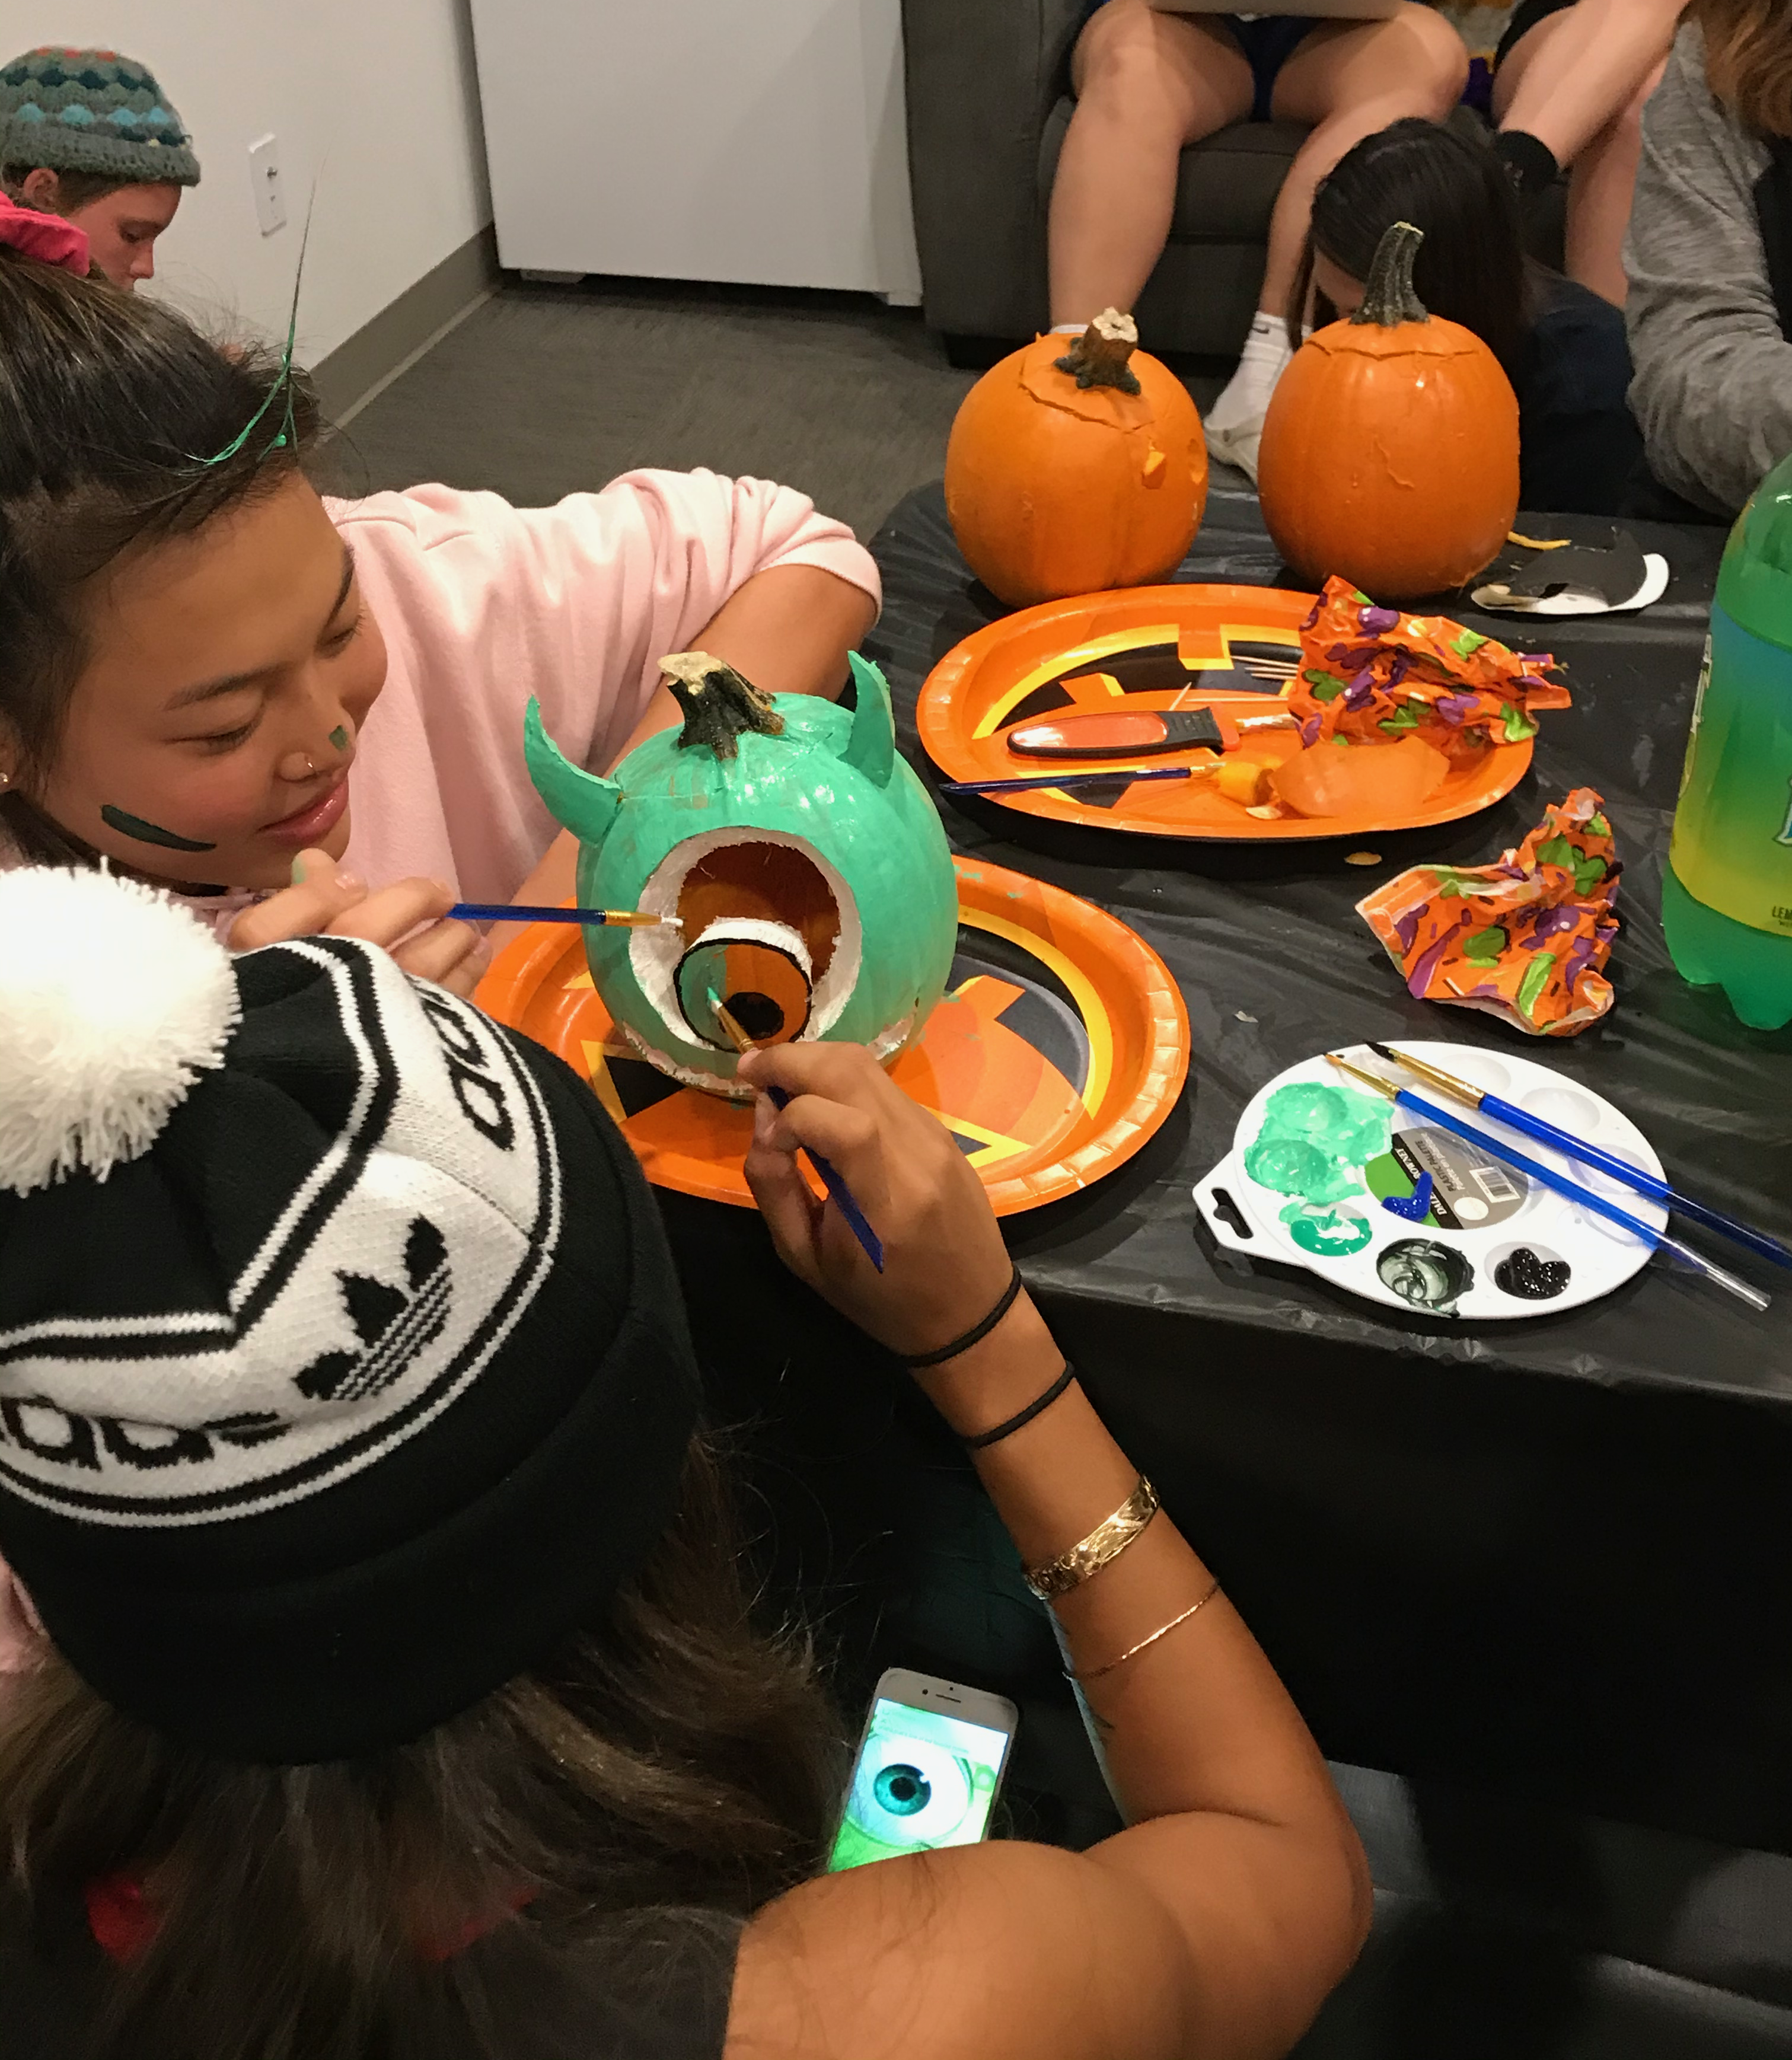 Two residents collaborating to finish decorating a pumpkin